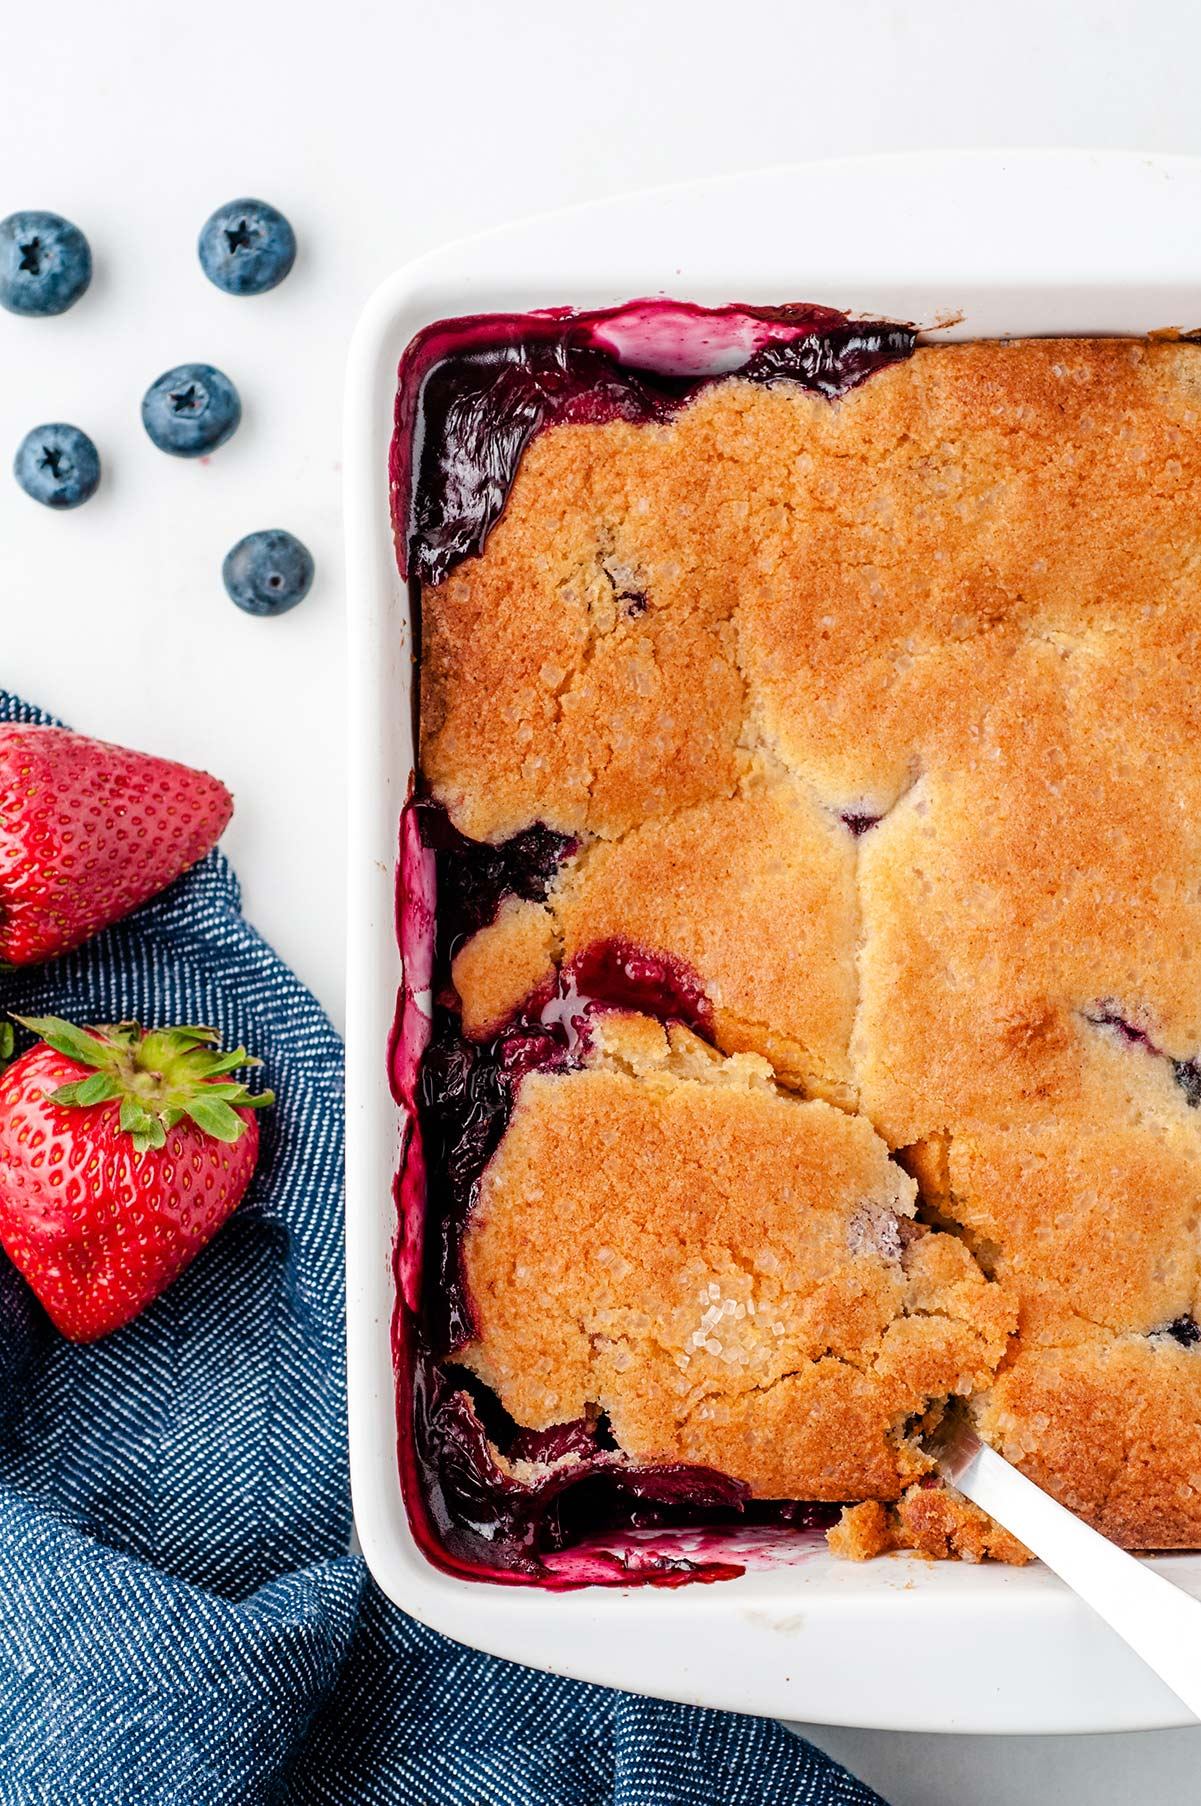 half of a white baking dish with a baked berry cobbler. blueberries, strawberries, and a blue towel on the side.